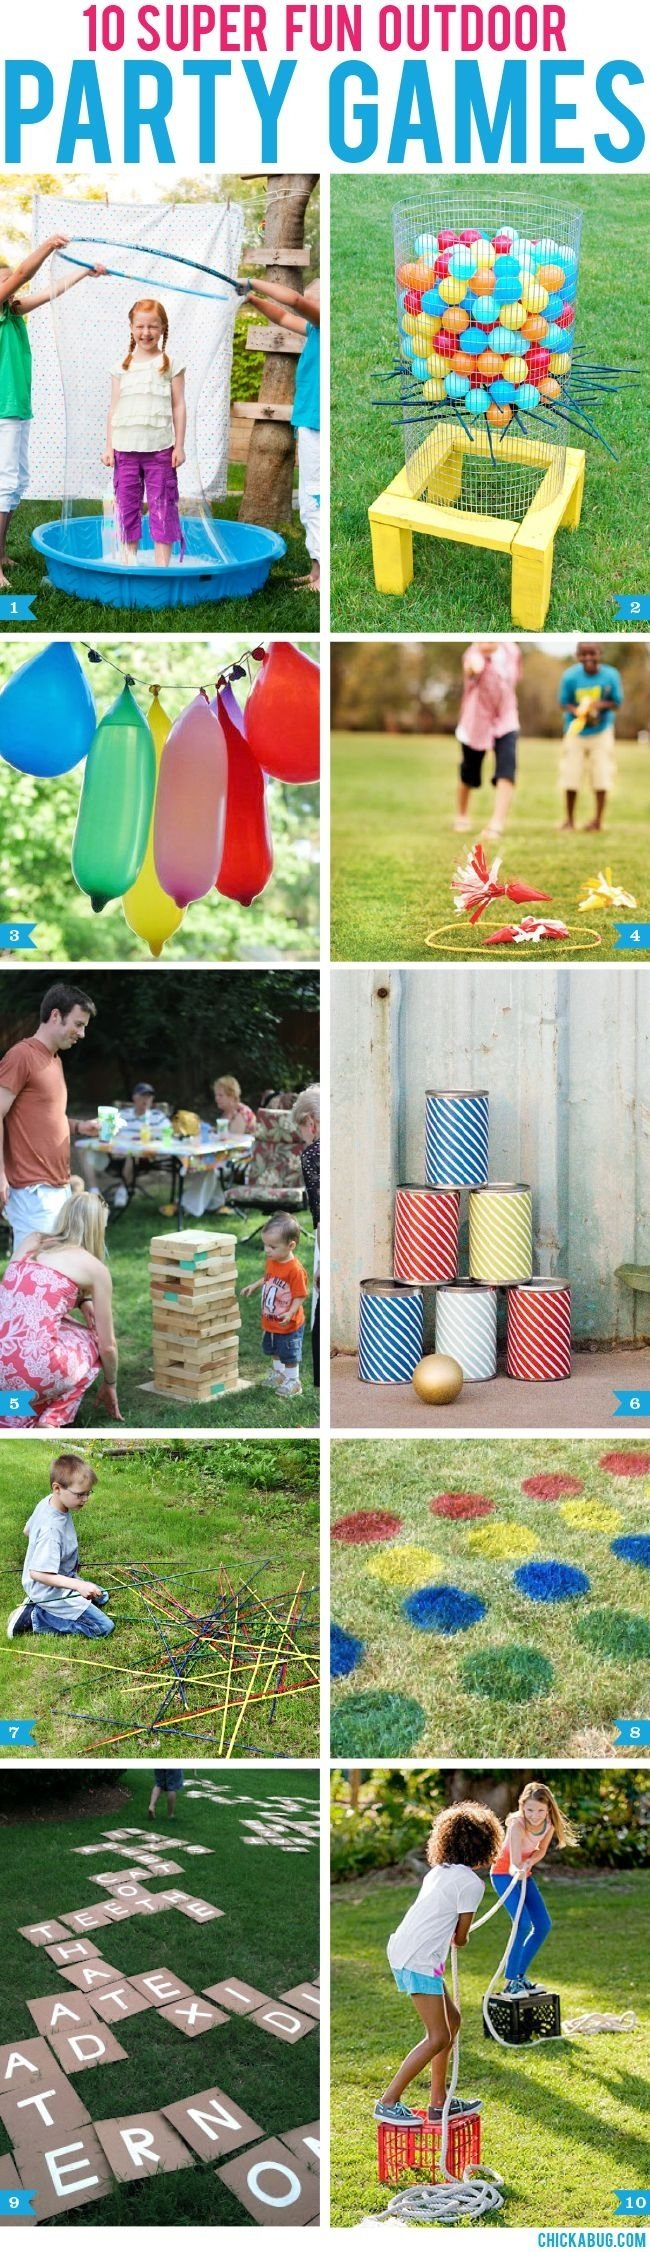 10 Perfect Party Game Ideas For Kids 219 best kids party ideas images on pinterest birthdays birthday 1 2021